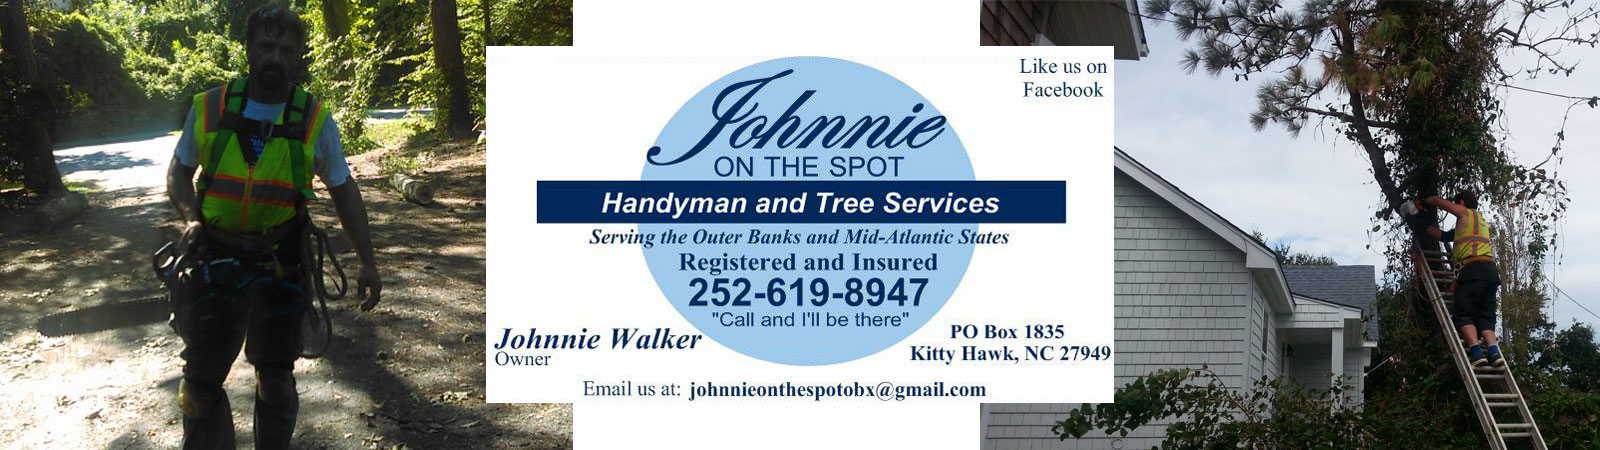 OBX handyman tree services